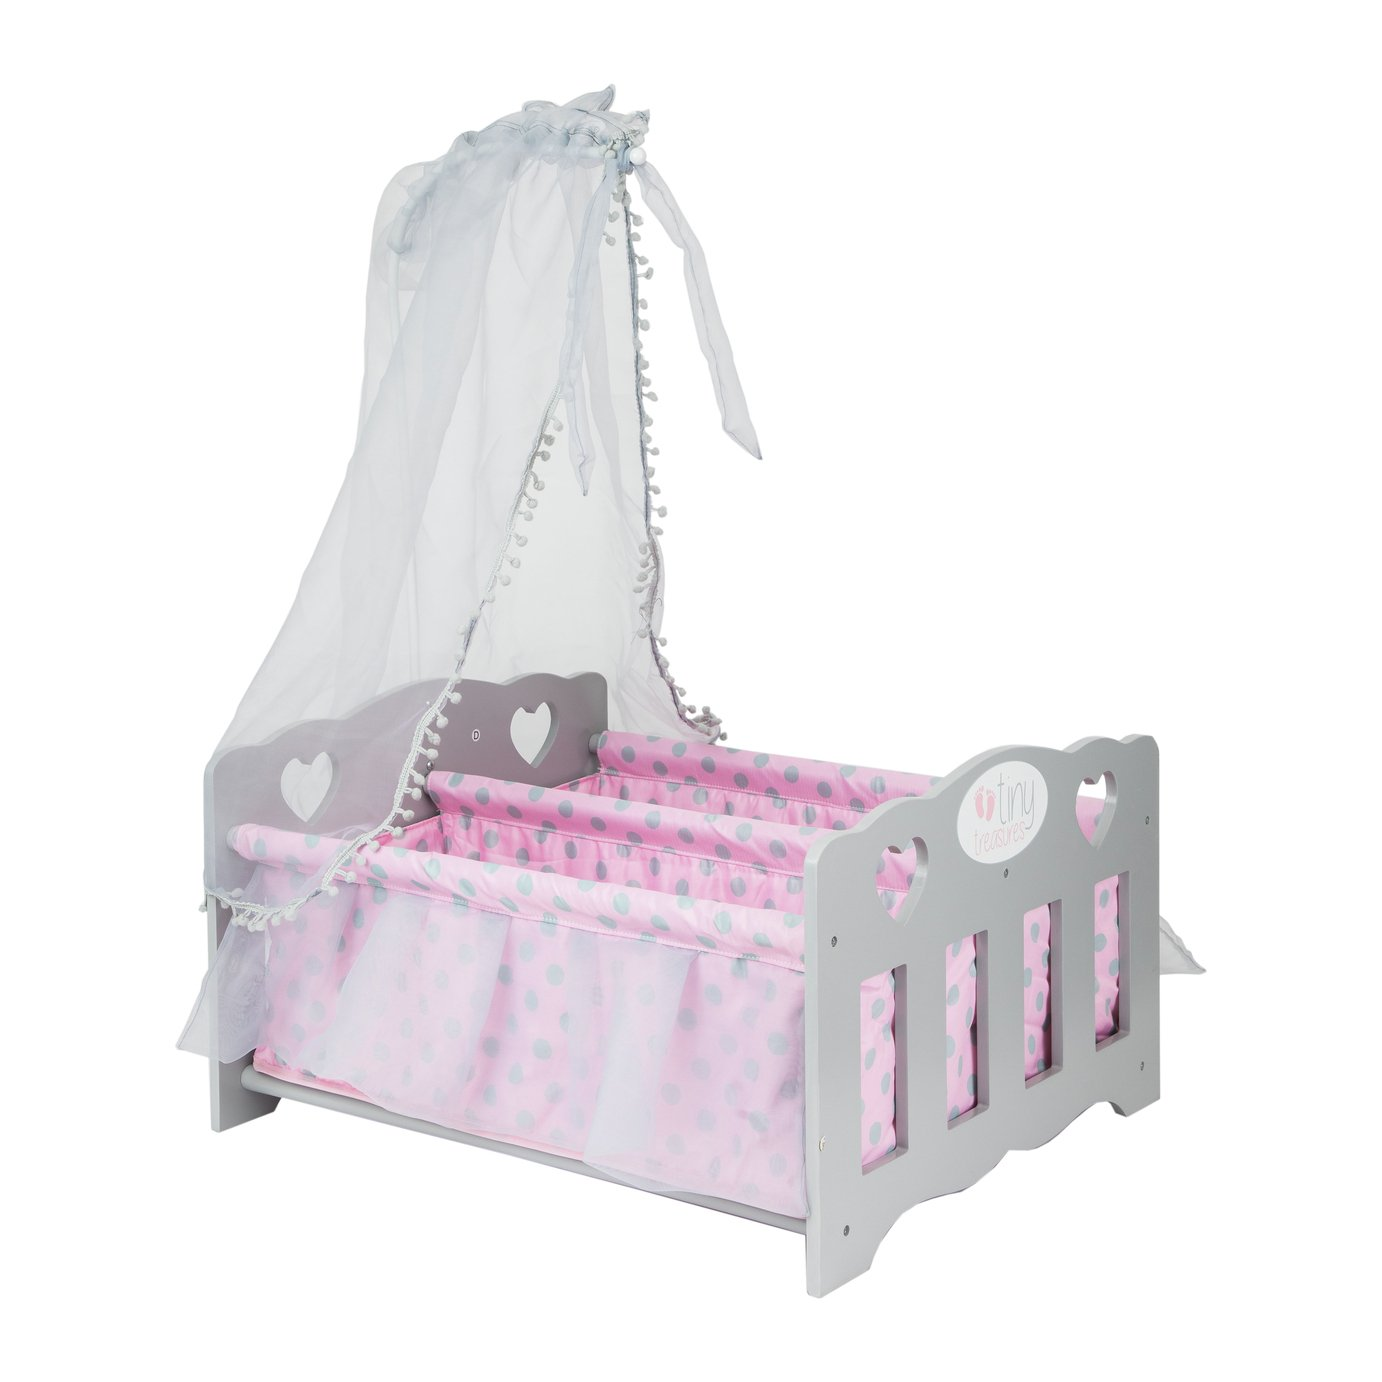 Chad Valley Tiny Treasures Wooden Double Baby Cot review